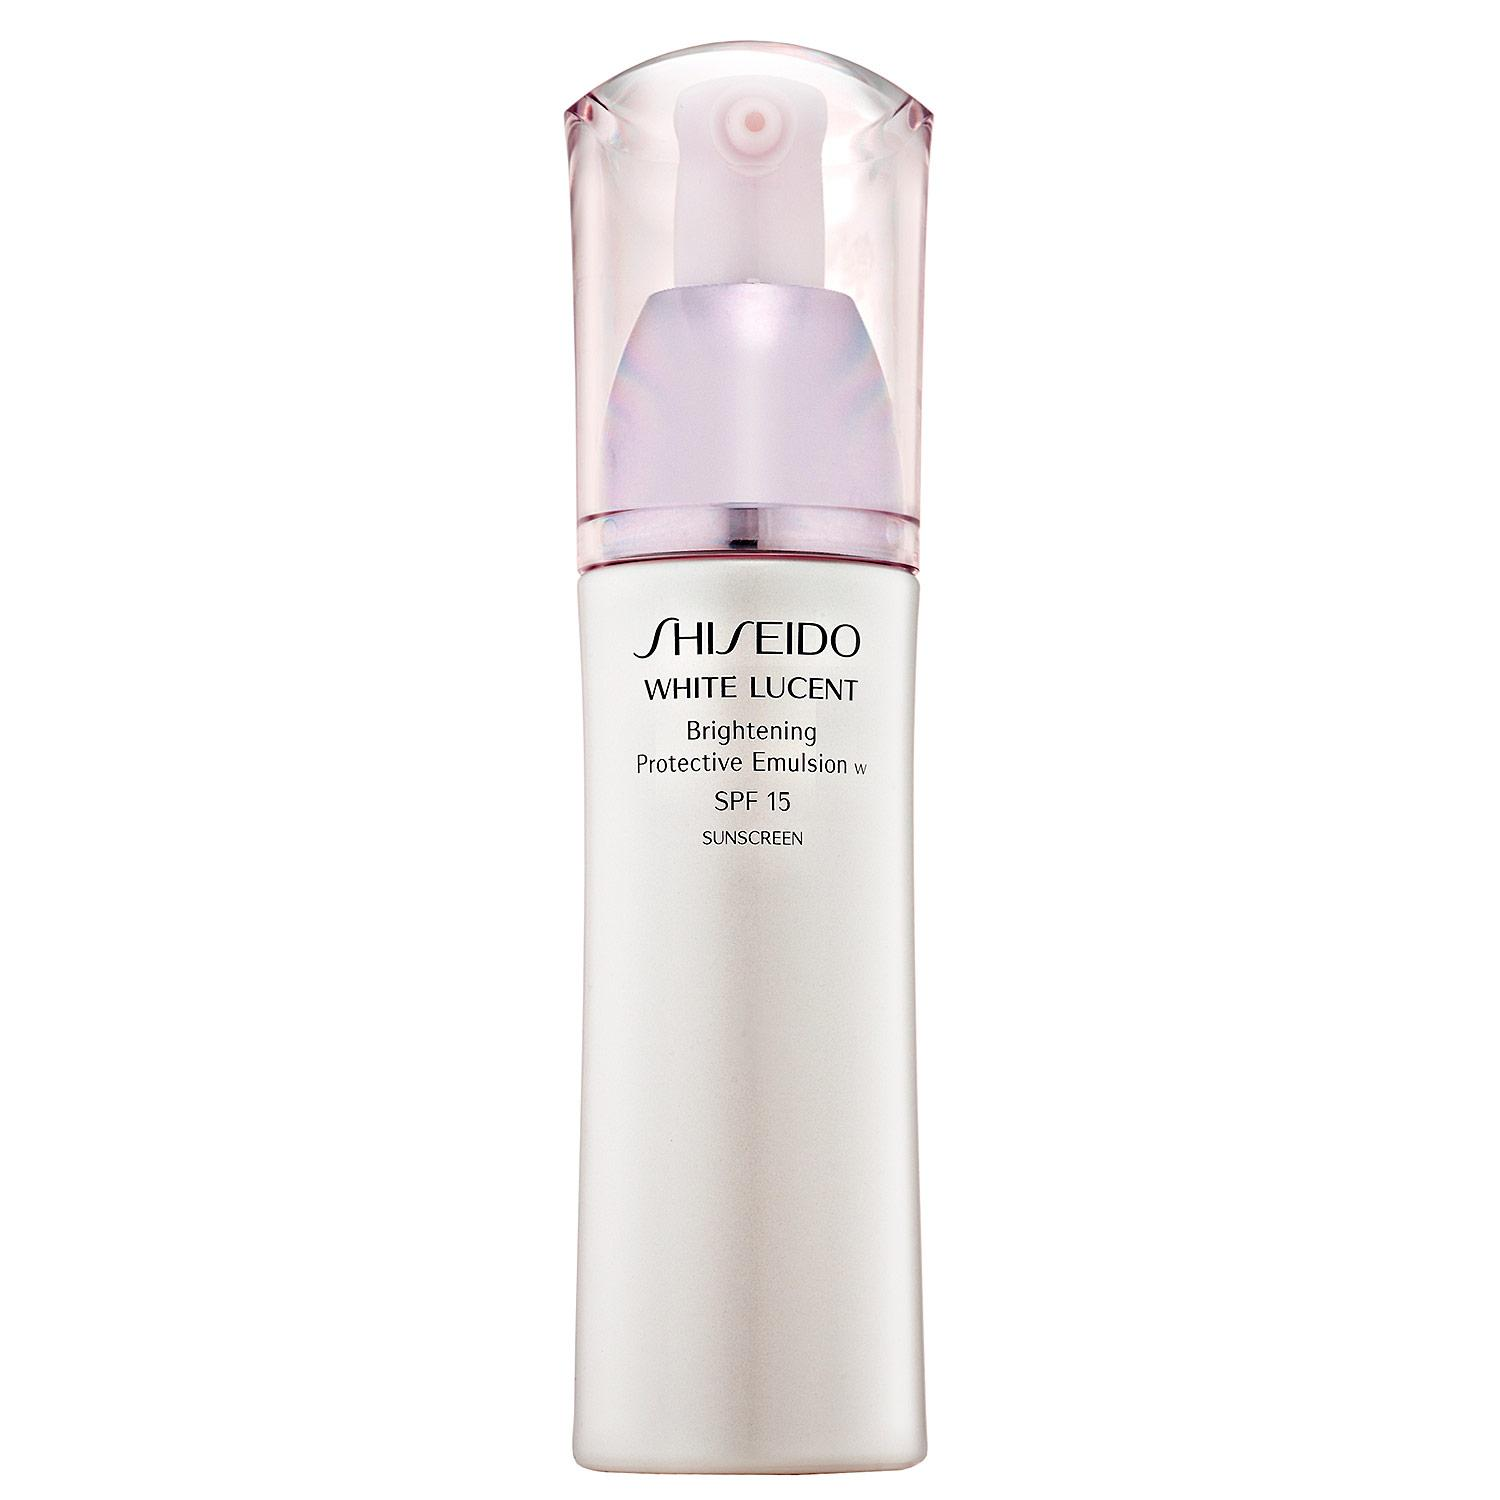 White Lucent Brightening Protective Emulsion SPF 15